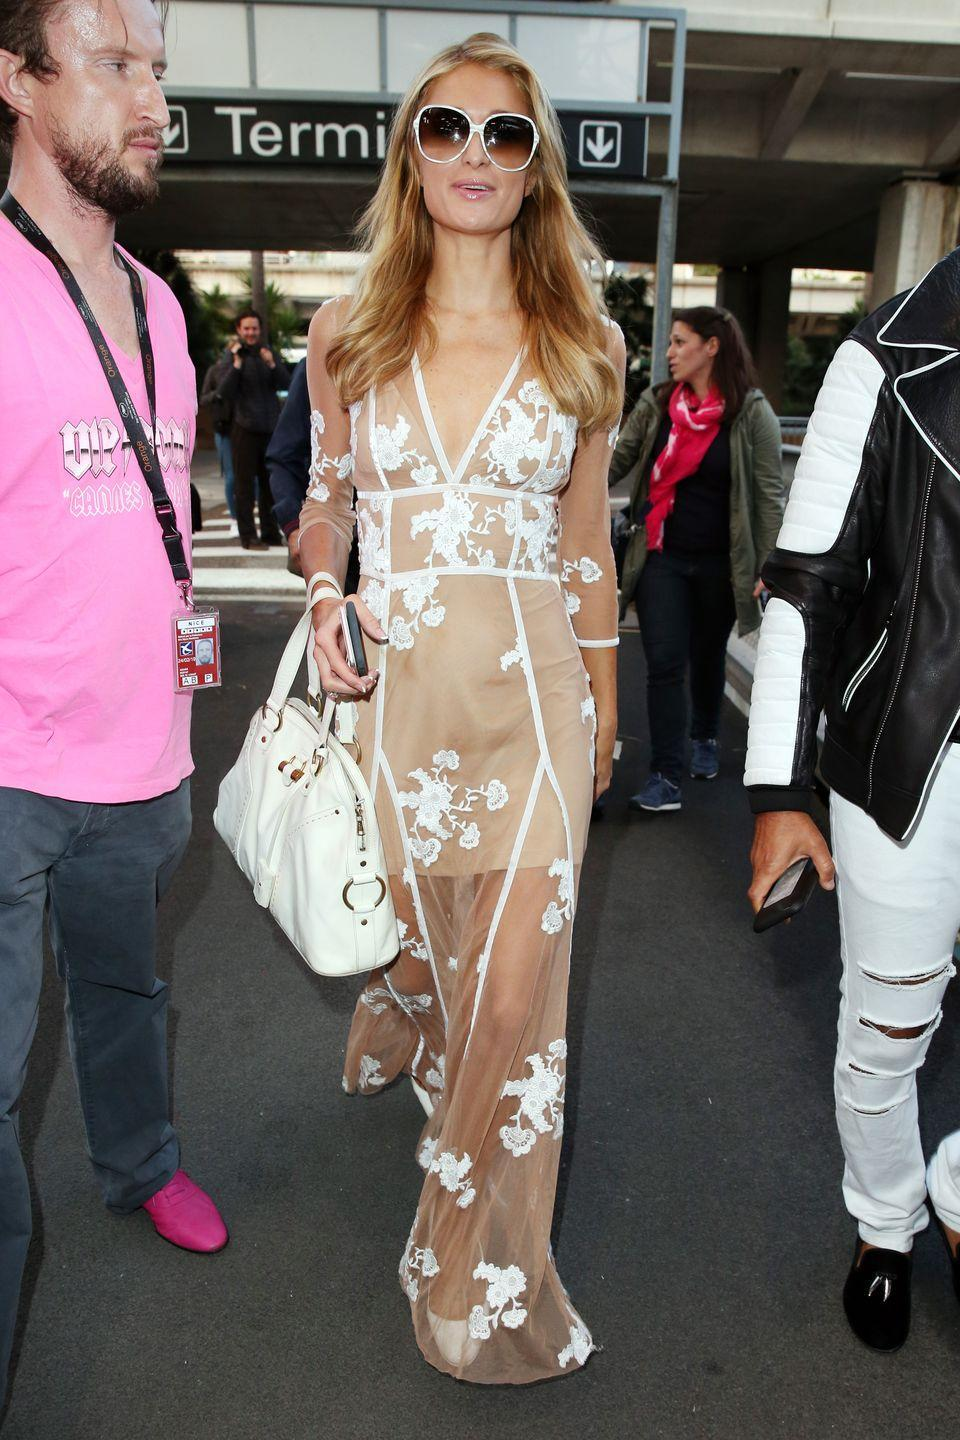 <p><strong>Paris Hilton, 2016: </strong>The heiress needs to take her sunglasses off and watch where she's stepping in this gown and heels situation.</p>